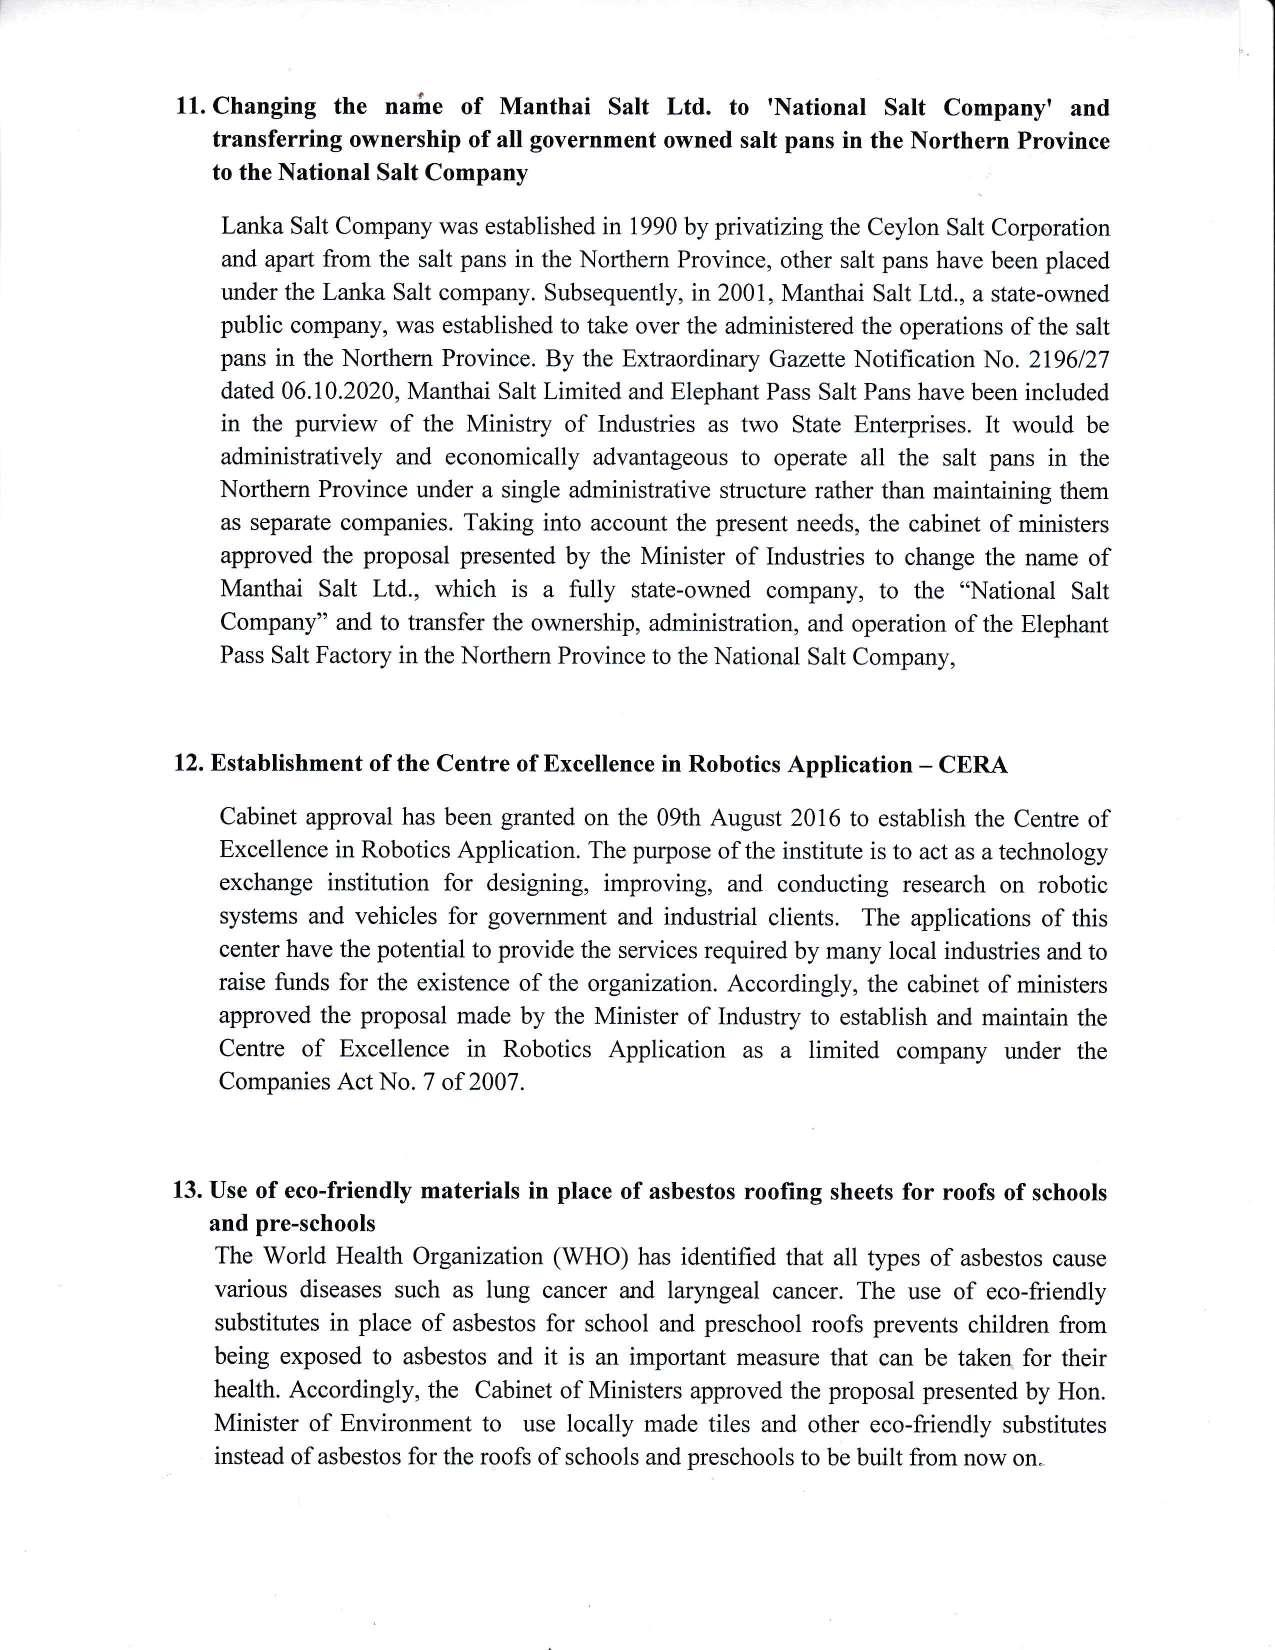 Cabinet Decision on 16.11.2020 English page 005